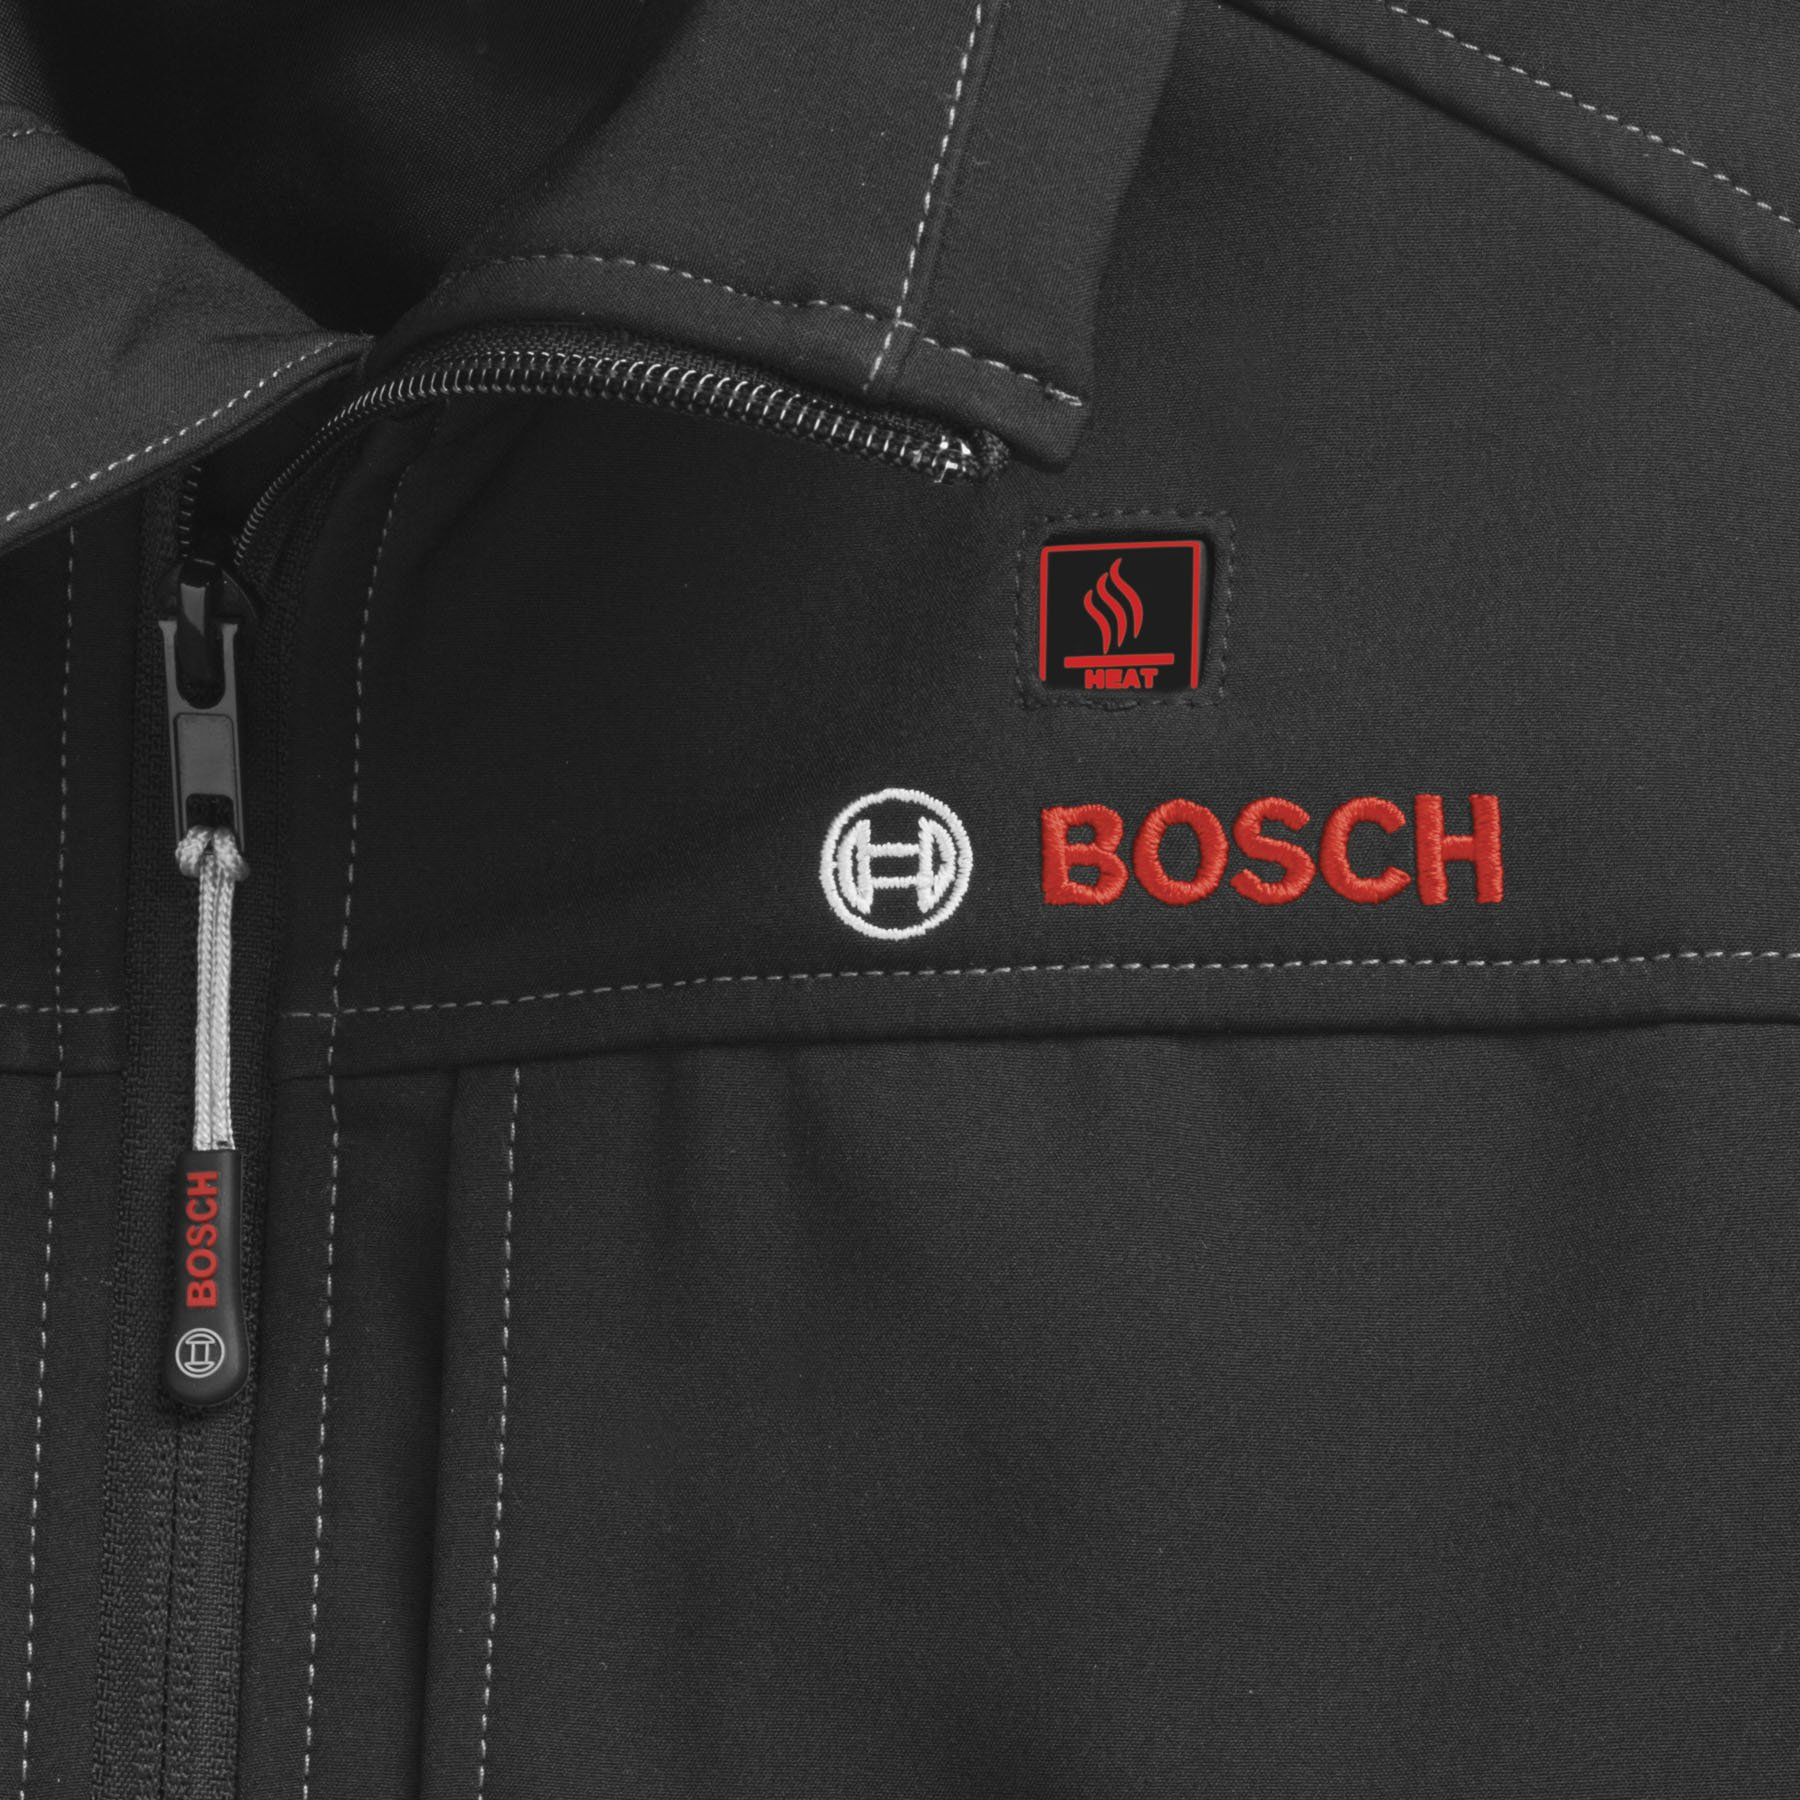 Bosch PSJ120L-102 Men's 12-volt Max Lithium-Ion Soft Shell Heated Jacket Kit with 2.0Ah Battery, Charger and Holster by Bosch (Image #8)